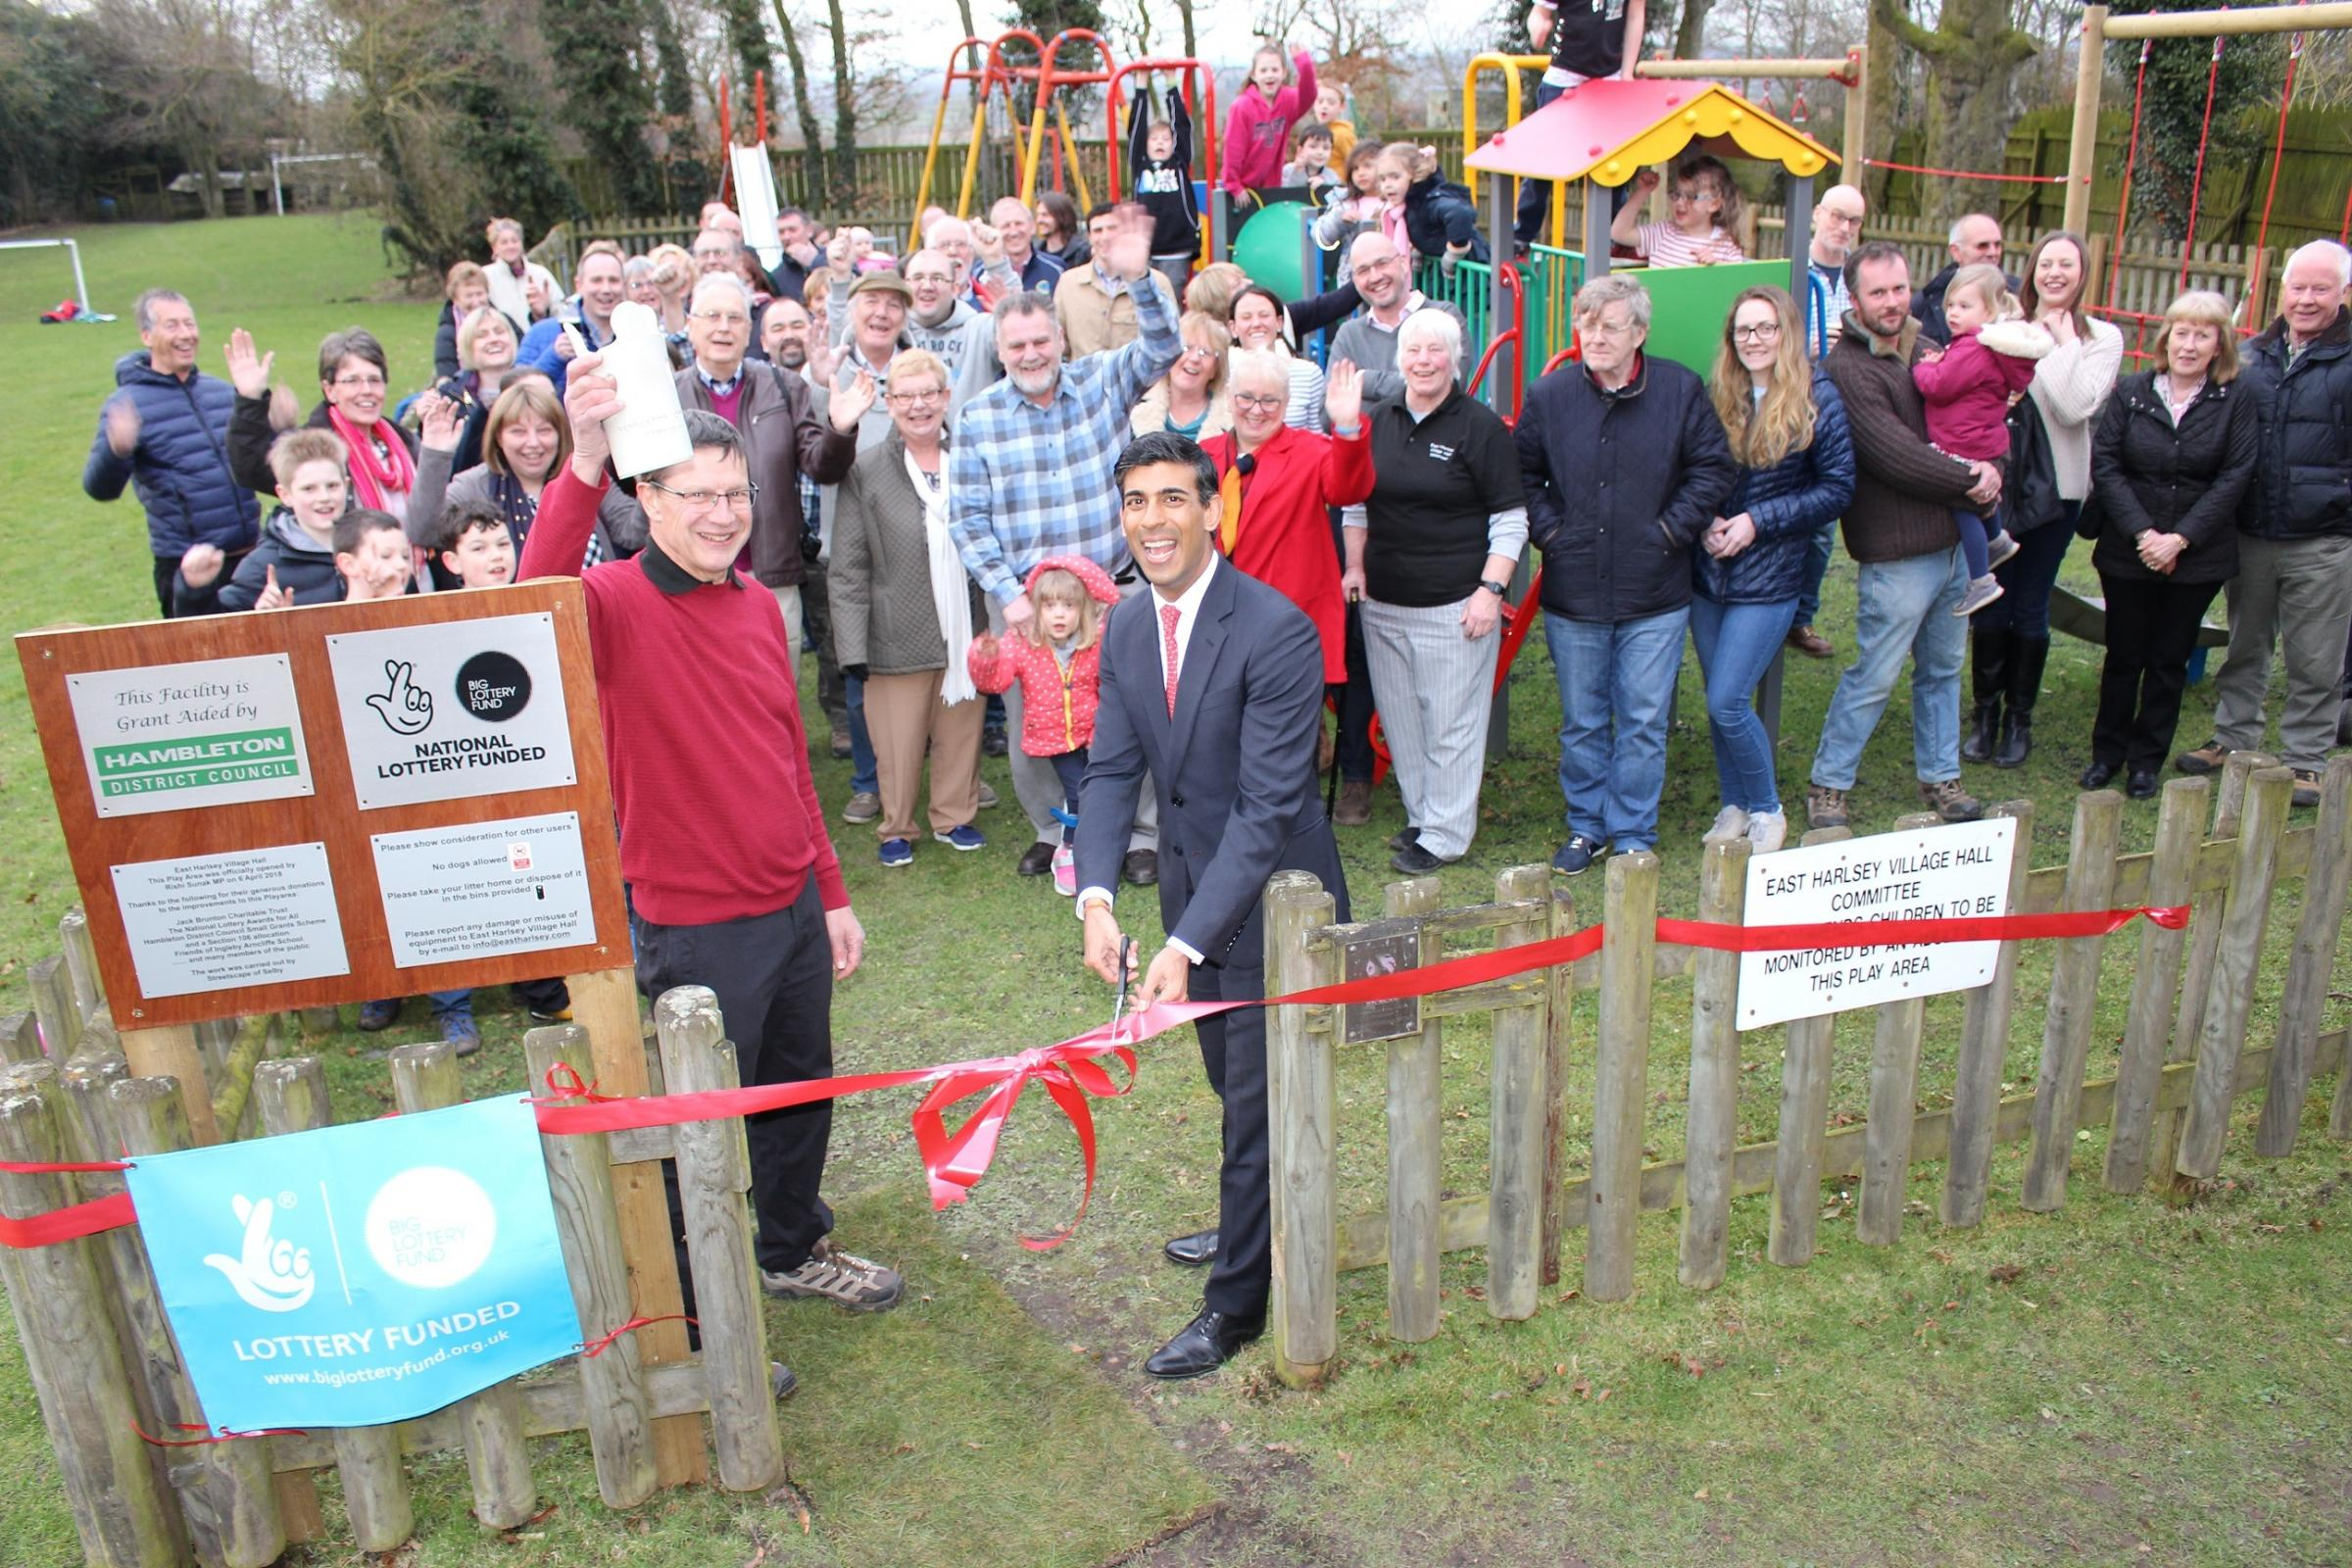 BIGGER: Rishi Sunak declares the improved play area open with Richard Martin, chairman of the village hall hall committee, and villagers.